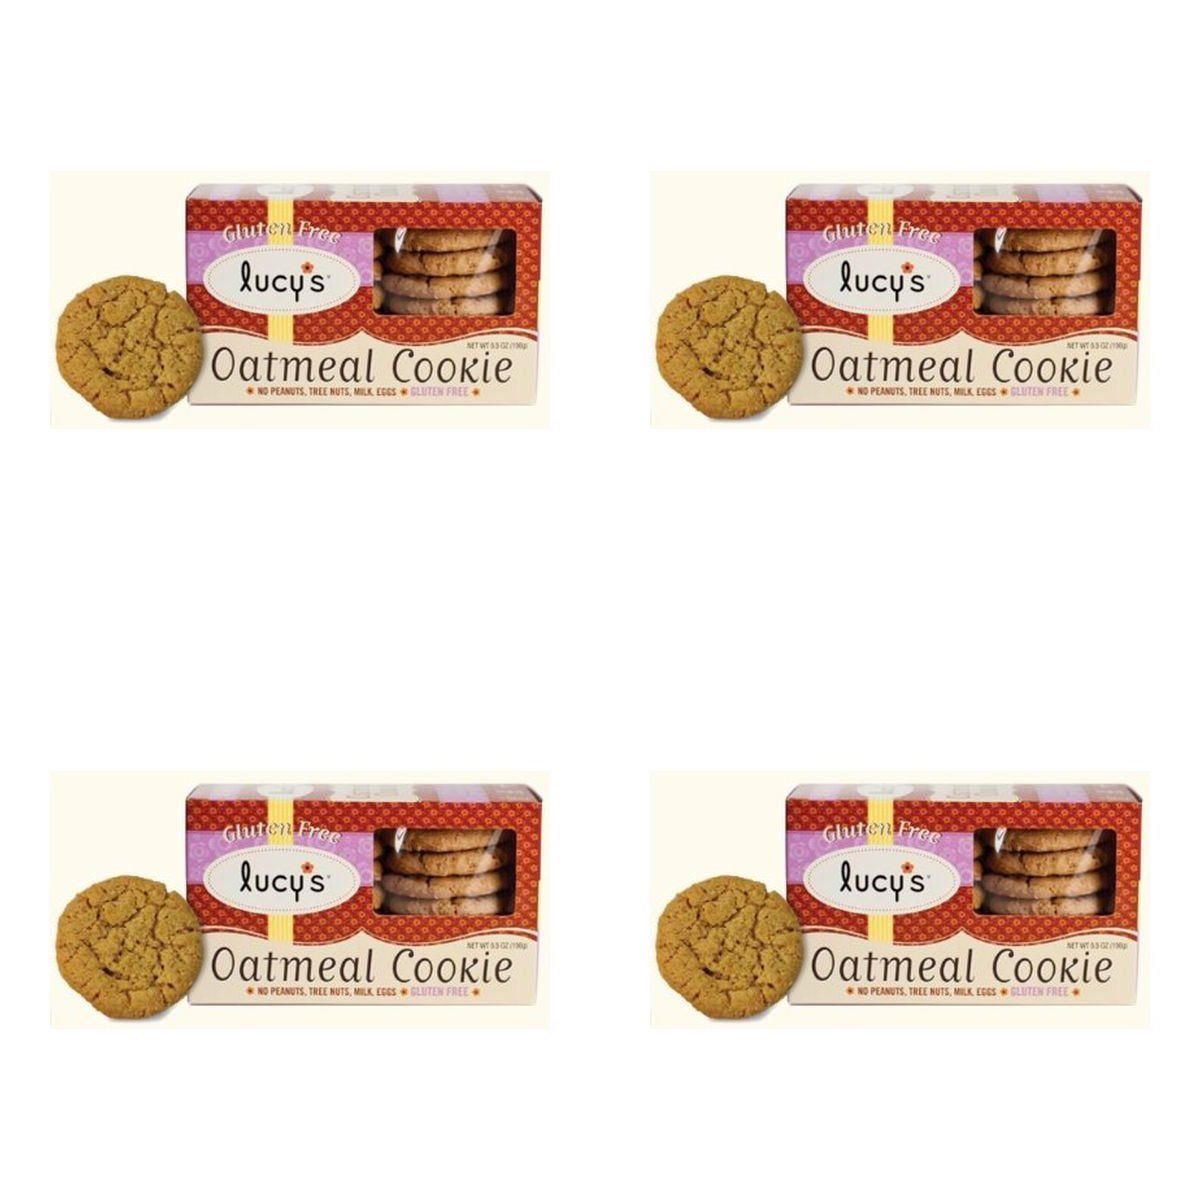 (4 PACK) - Lucy's Gluten Free Oatmeal Cookies| 156 g |4 PACK - SUPER SAVER - SAVE MONEY